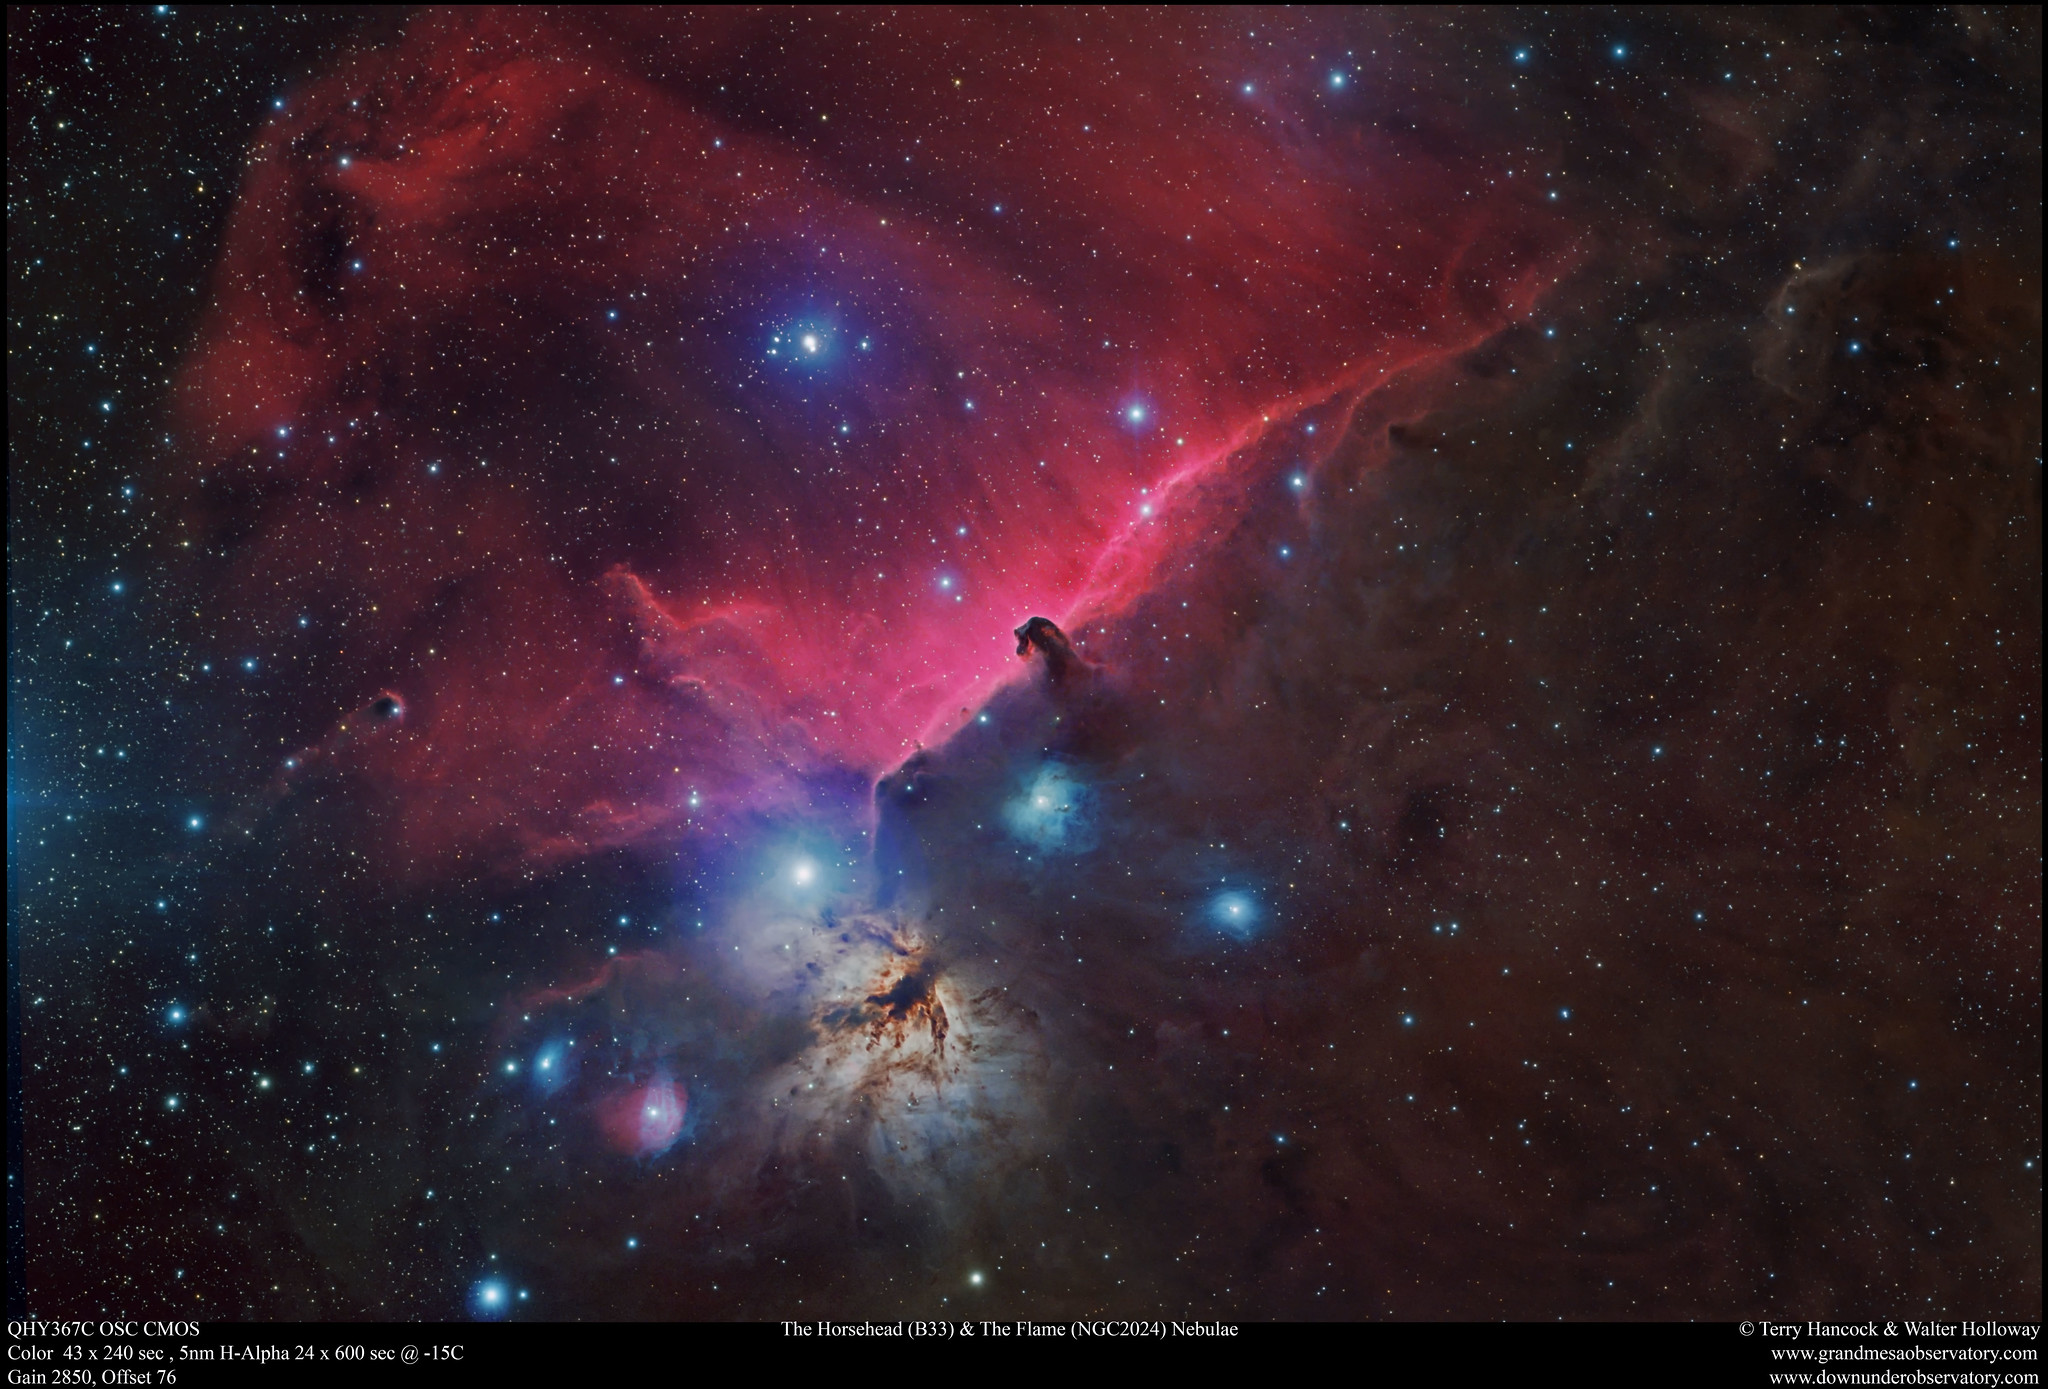 The Horsehead and The Flame Nebulae in RGB Location: GrandMesaObservatory.com Whitewater, Colorado  Date: 13th, 14th October 2017  RGB 43 x 4 min,  H Alpha 5nm 24 x 10 min  Camera: QHY367C  Gain 2850, Offset 76 with Dark Frames no Flat.  Optics: Walter Holloway`s Takahashi FSQ 130 APO Refractor @ F5  Filters by Chroma  EQ Mount: Paramount ME  Image Acquisition software Maxim DL5  Registered, Calibrated and Stacked in Deep Sky Stacker  Post Processed with Pixinsight and Photoshop CS6